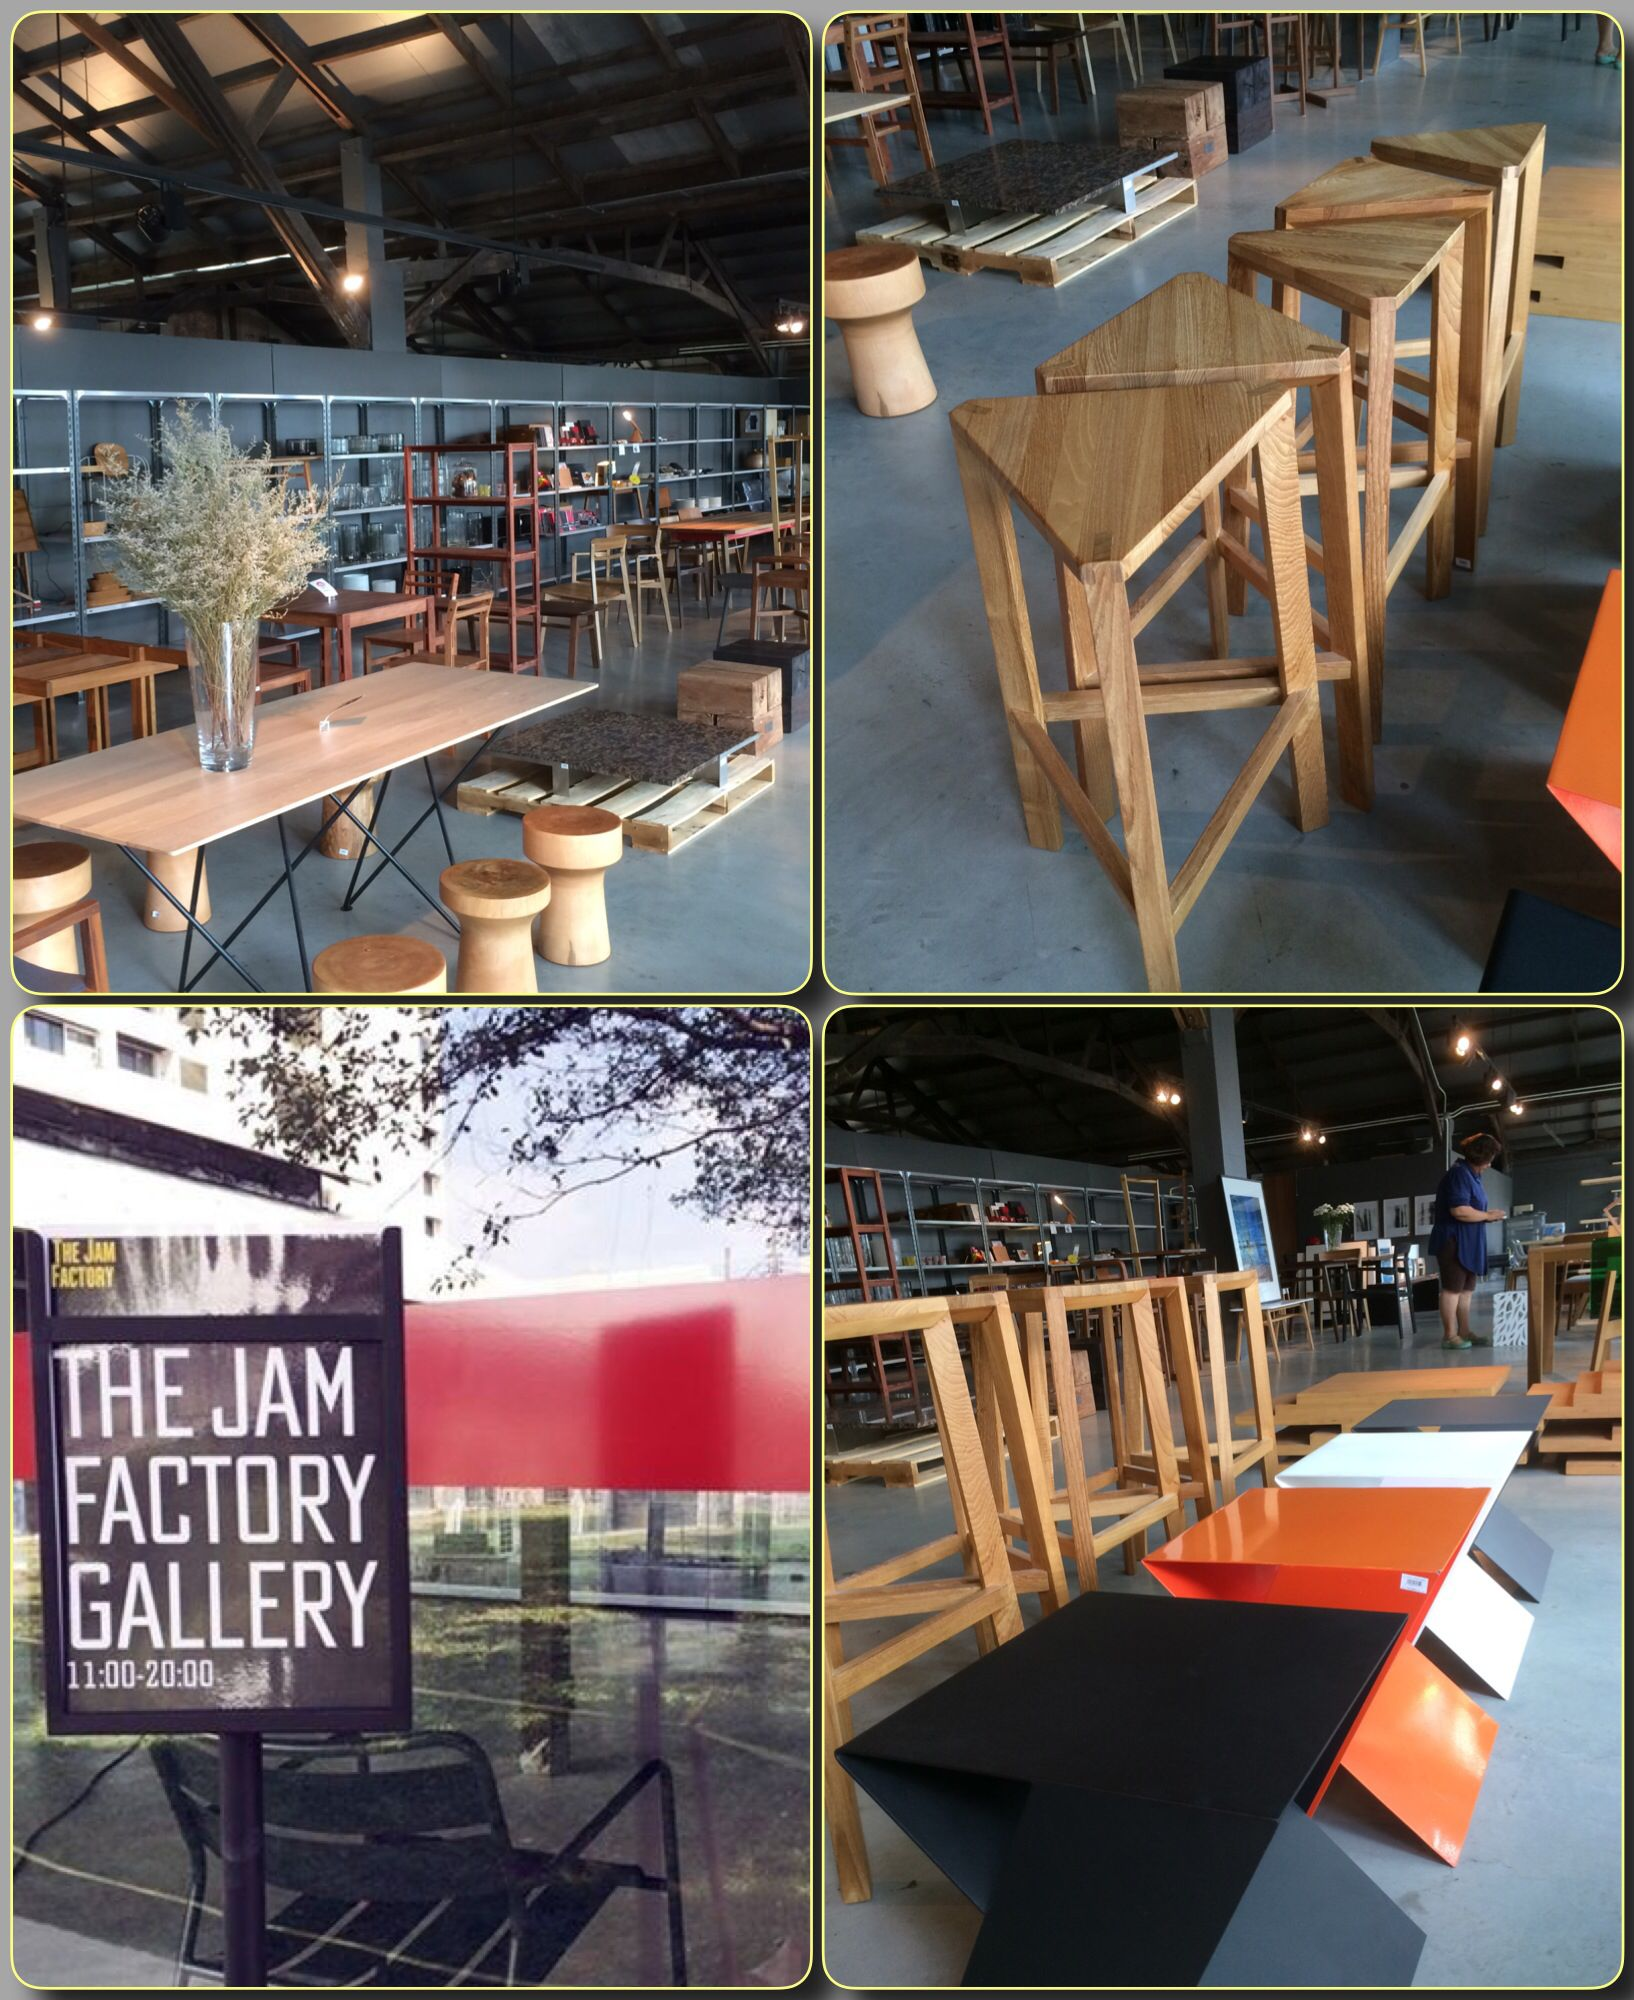 The Jam Factory Gallery No.4 | Cafe restaurant. Table decorations. Decor